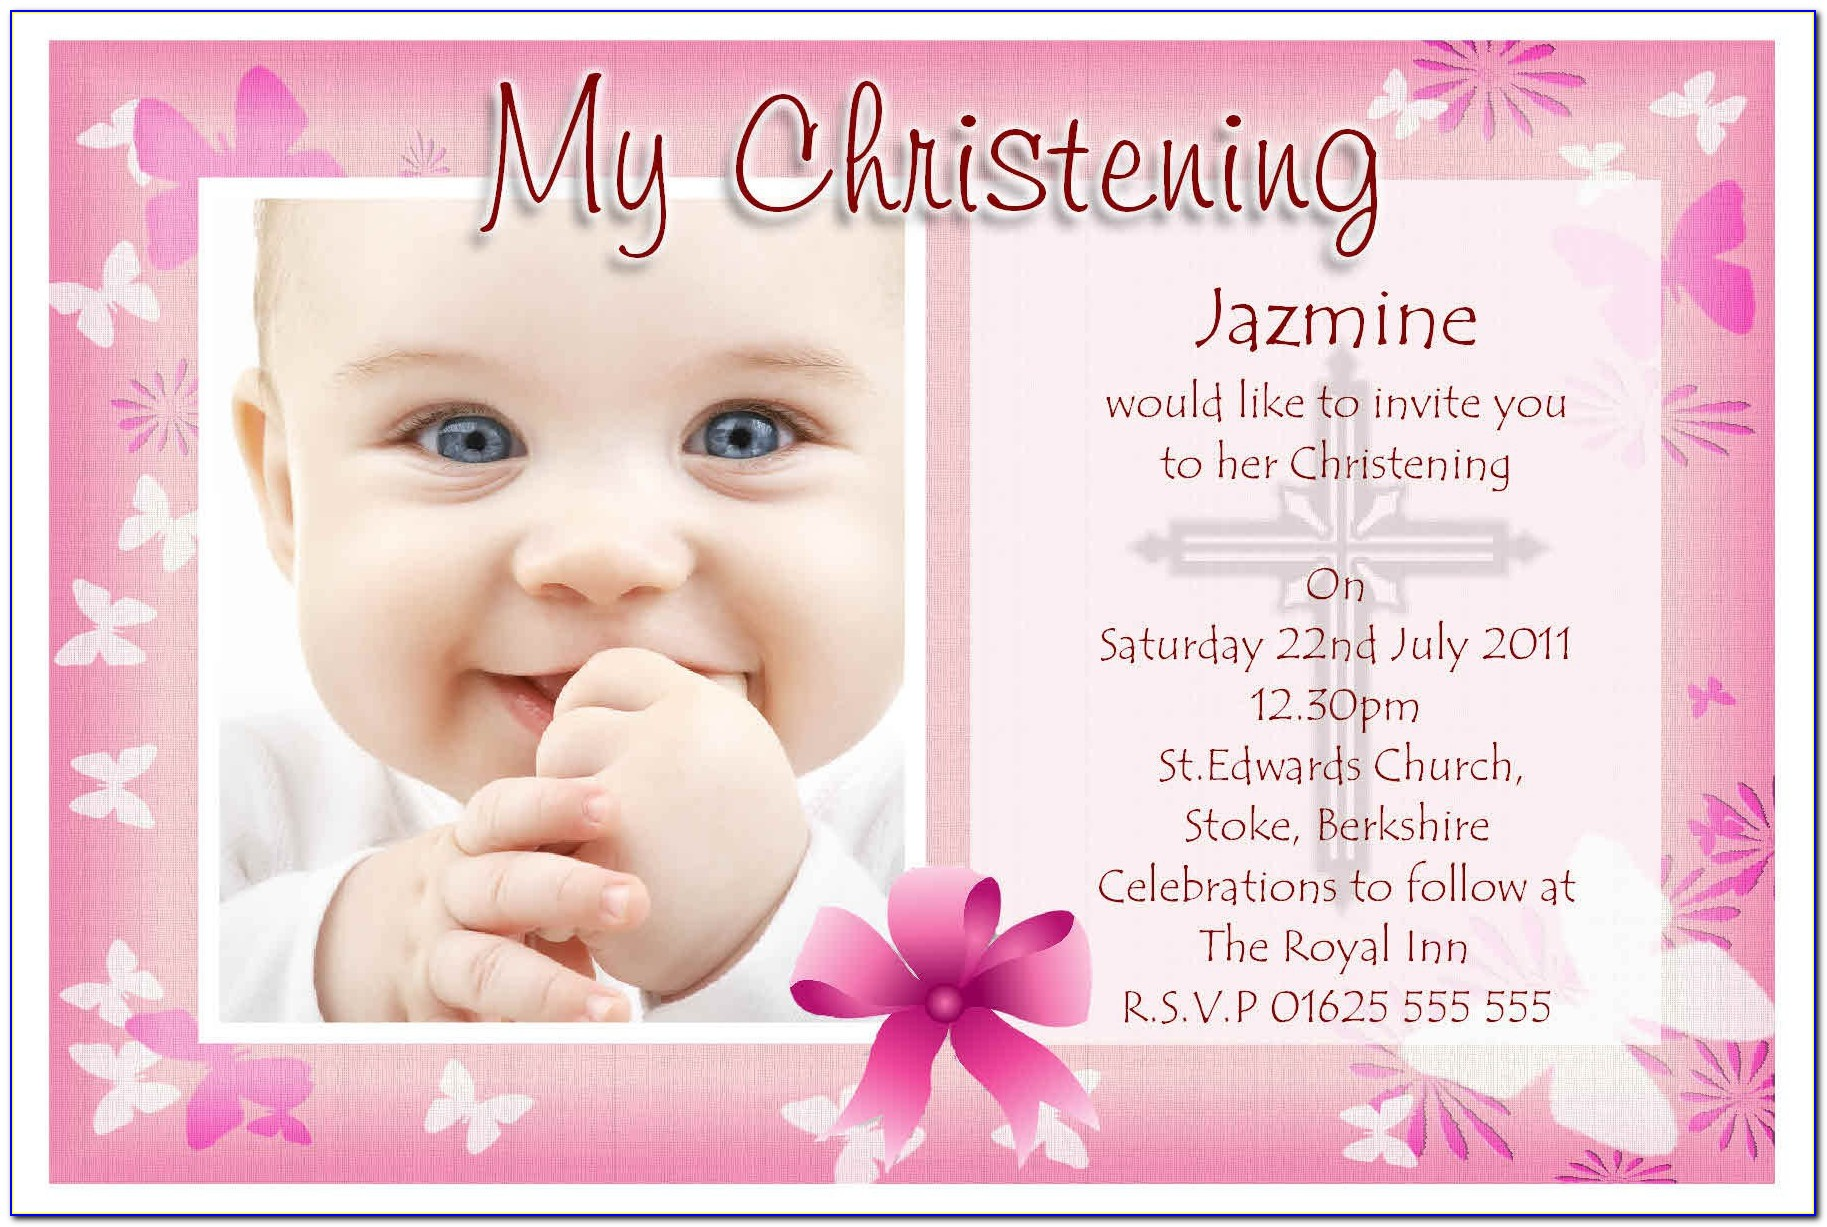 Invitation Designs For Christening